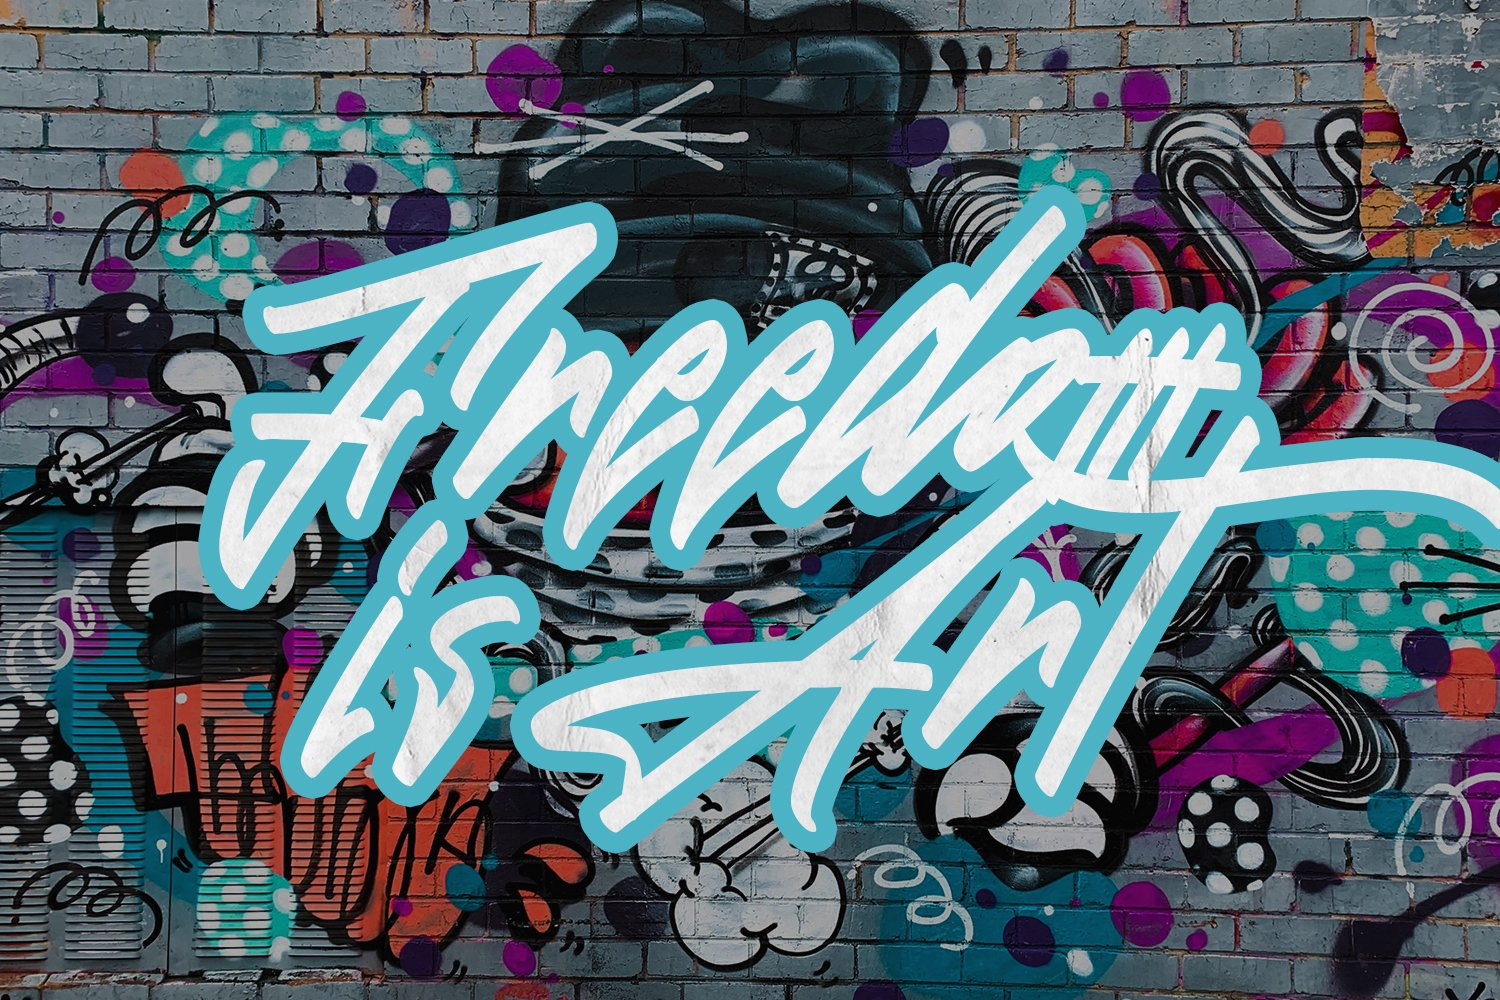 The Graffiti Font | Free Text Effect example image 6